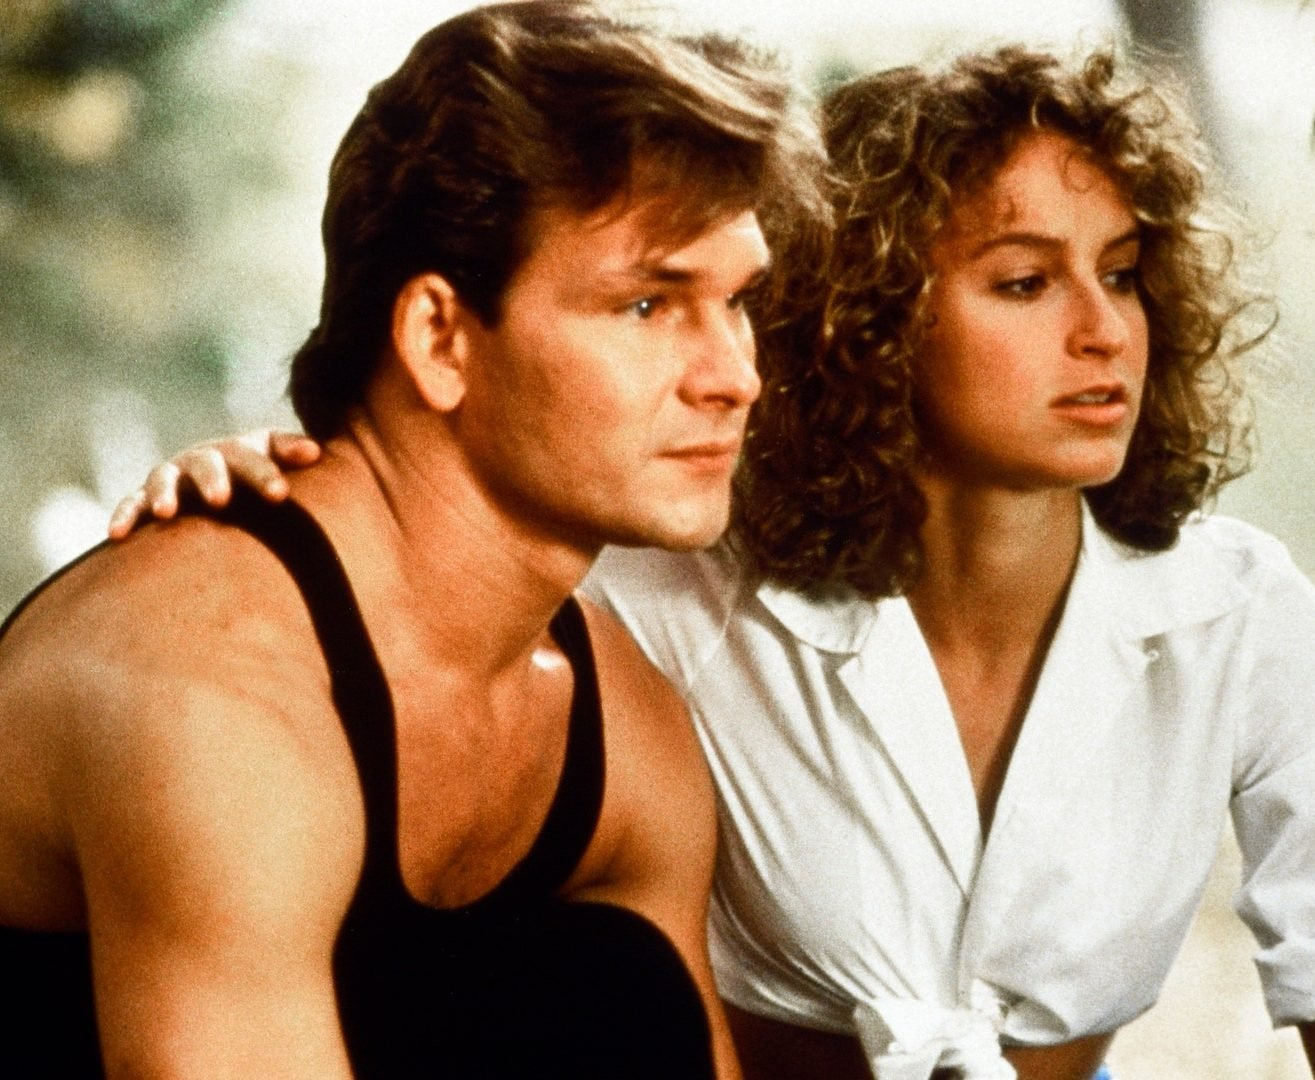 076 CHL 048037 e1617268775526 30 Things You Probably Didn't Know About Dirty Dancing